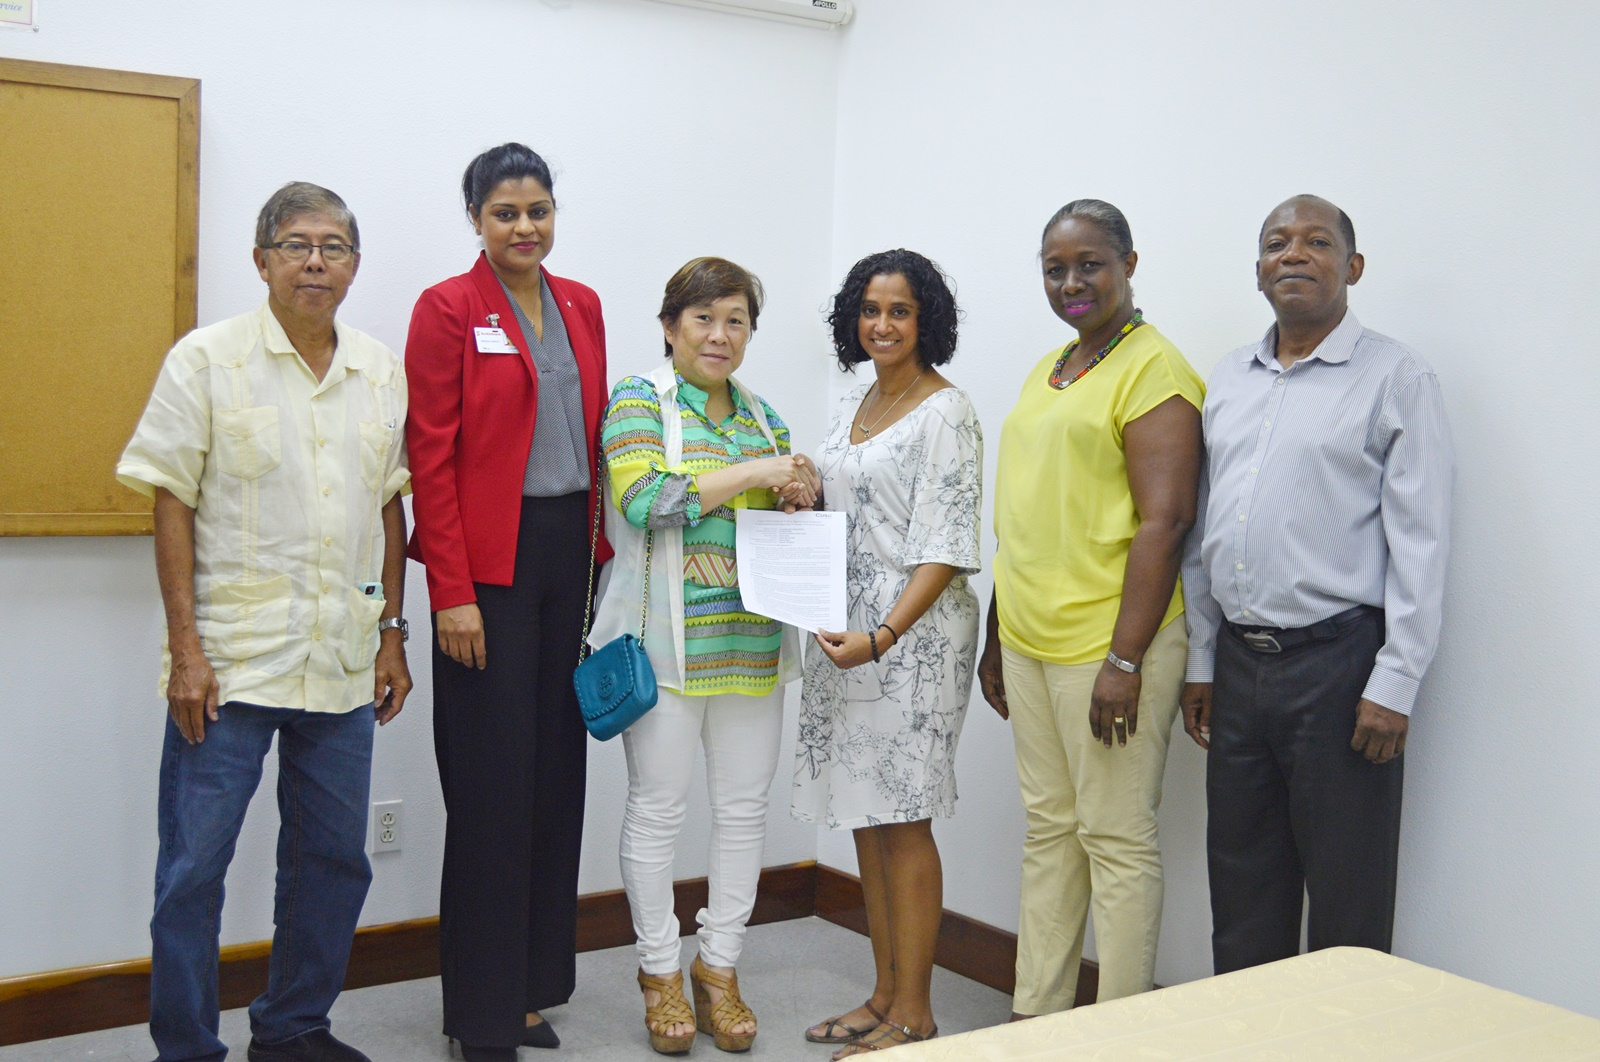 From left are Mr. Stanley Ming, GF Trustee; Ms. Nafeeza Gafoor of Scotiobank; Mrs. Che Jian Ping, GF Trustee; Ms. Sharon Slate, Volunteer; Ms. Vanessa Thompson, Cuso country manager; and Mr. Eric Phillips, GF Trustee.